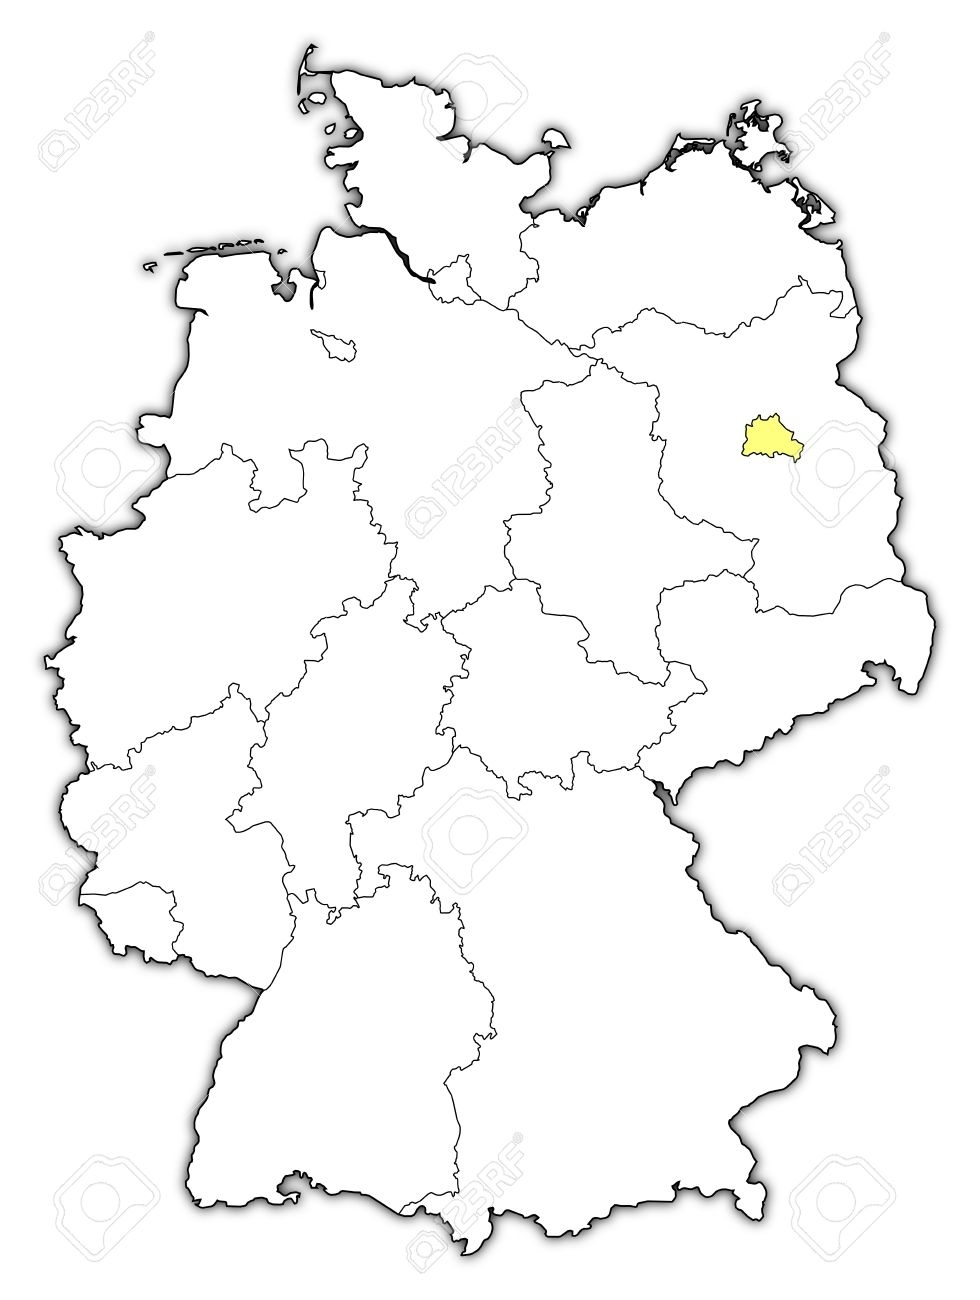 Political Map Of Germany With The Several States Where Berlin.. in Outline Map Of Germany With States